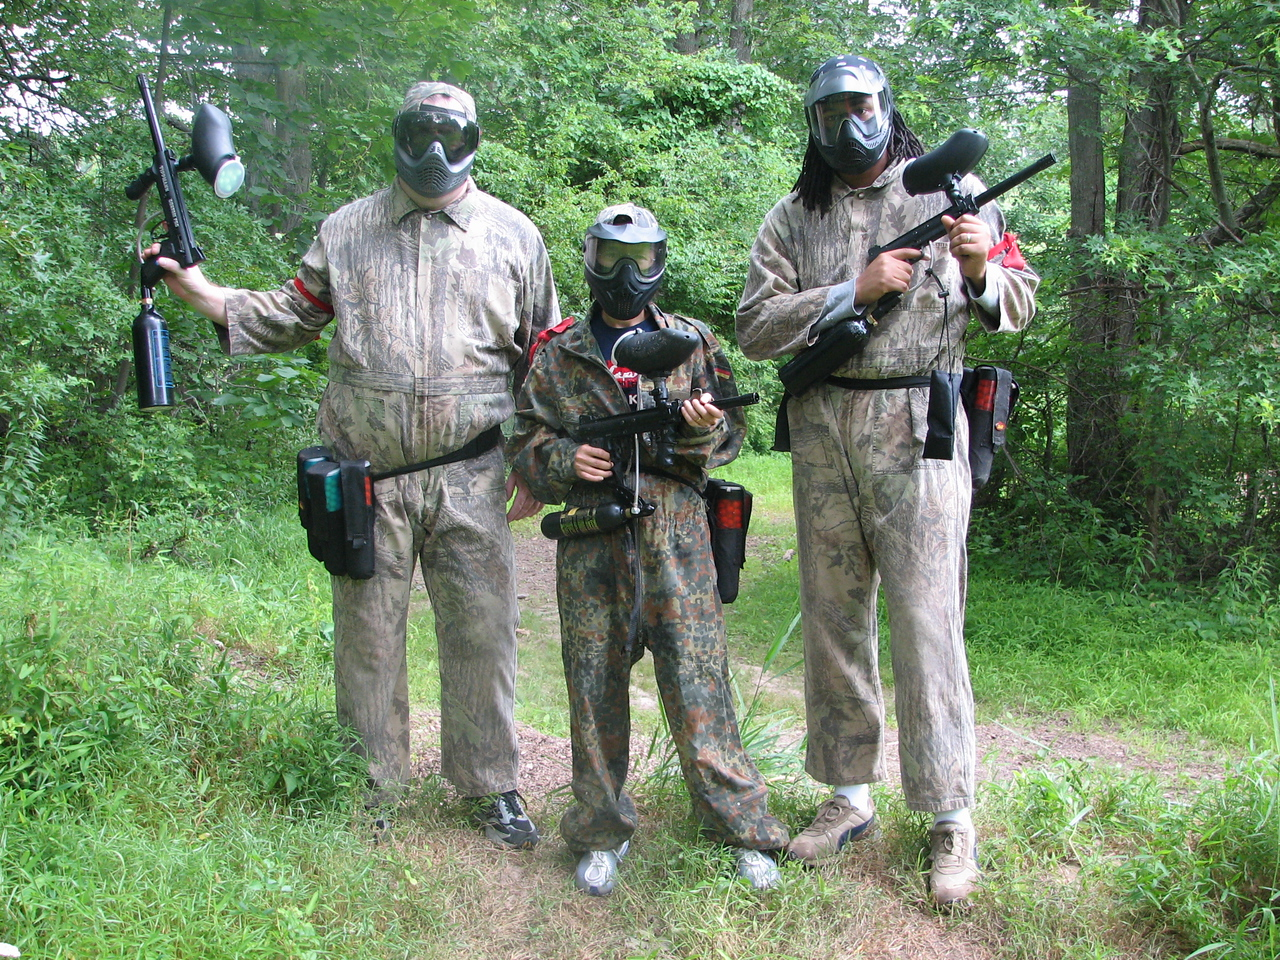 The original members of the red team L-R: Pat, Kelly and Delano